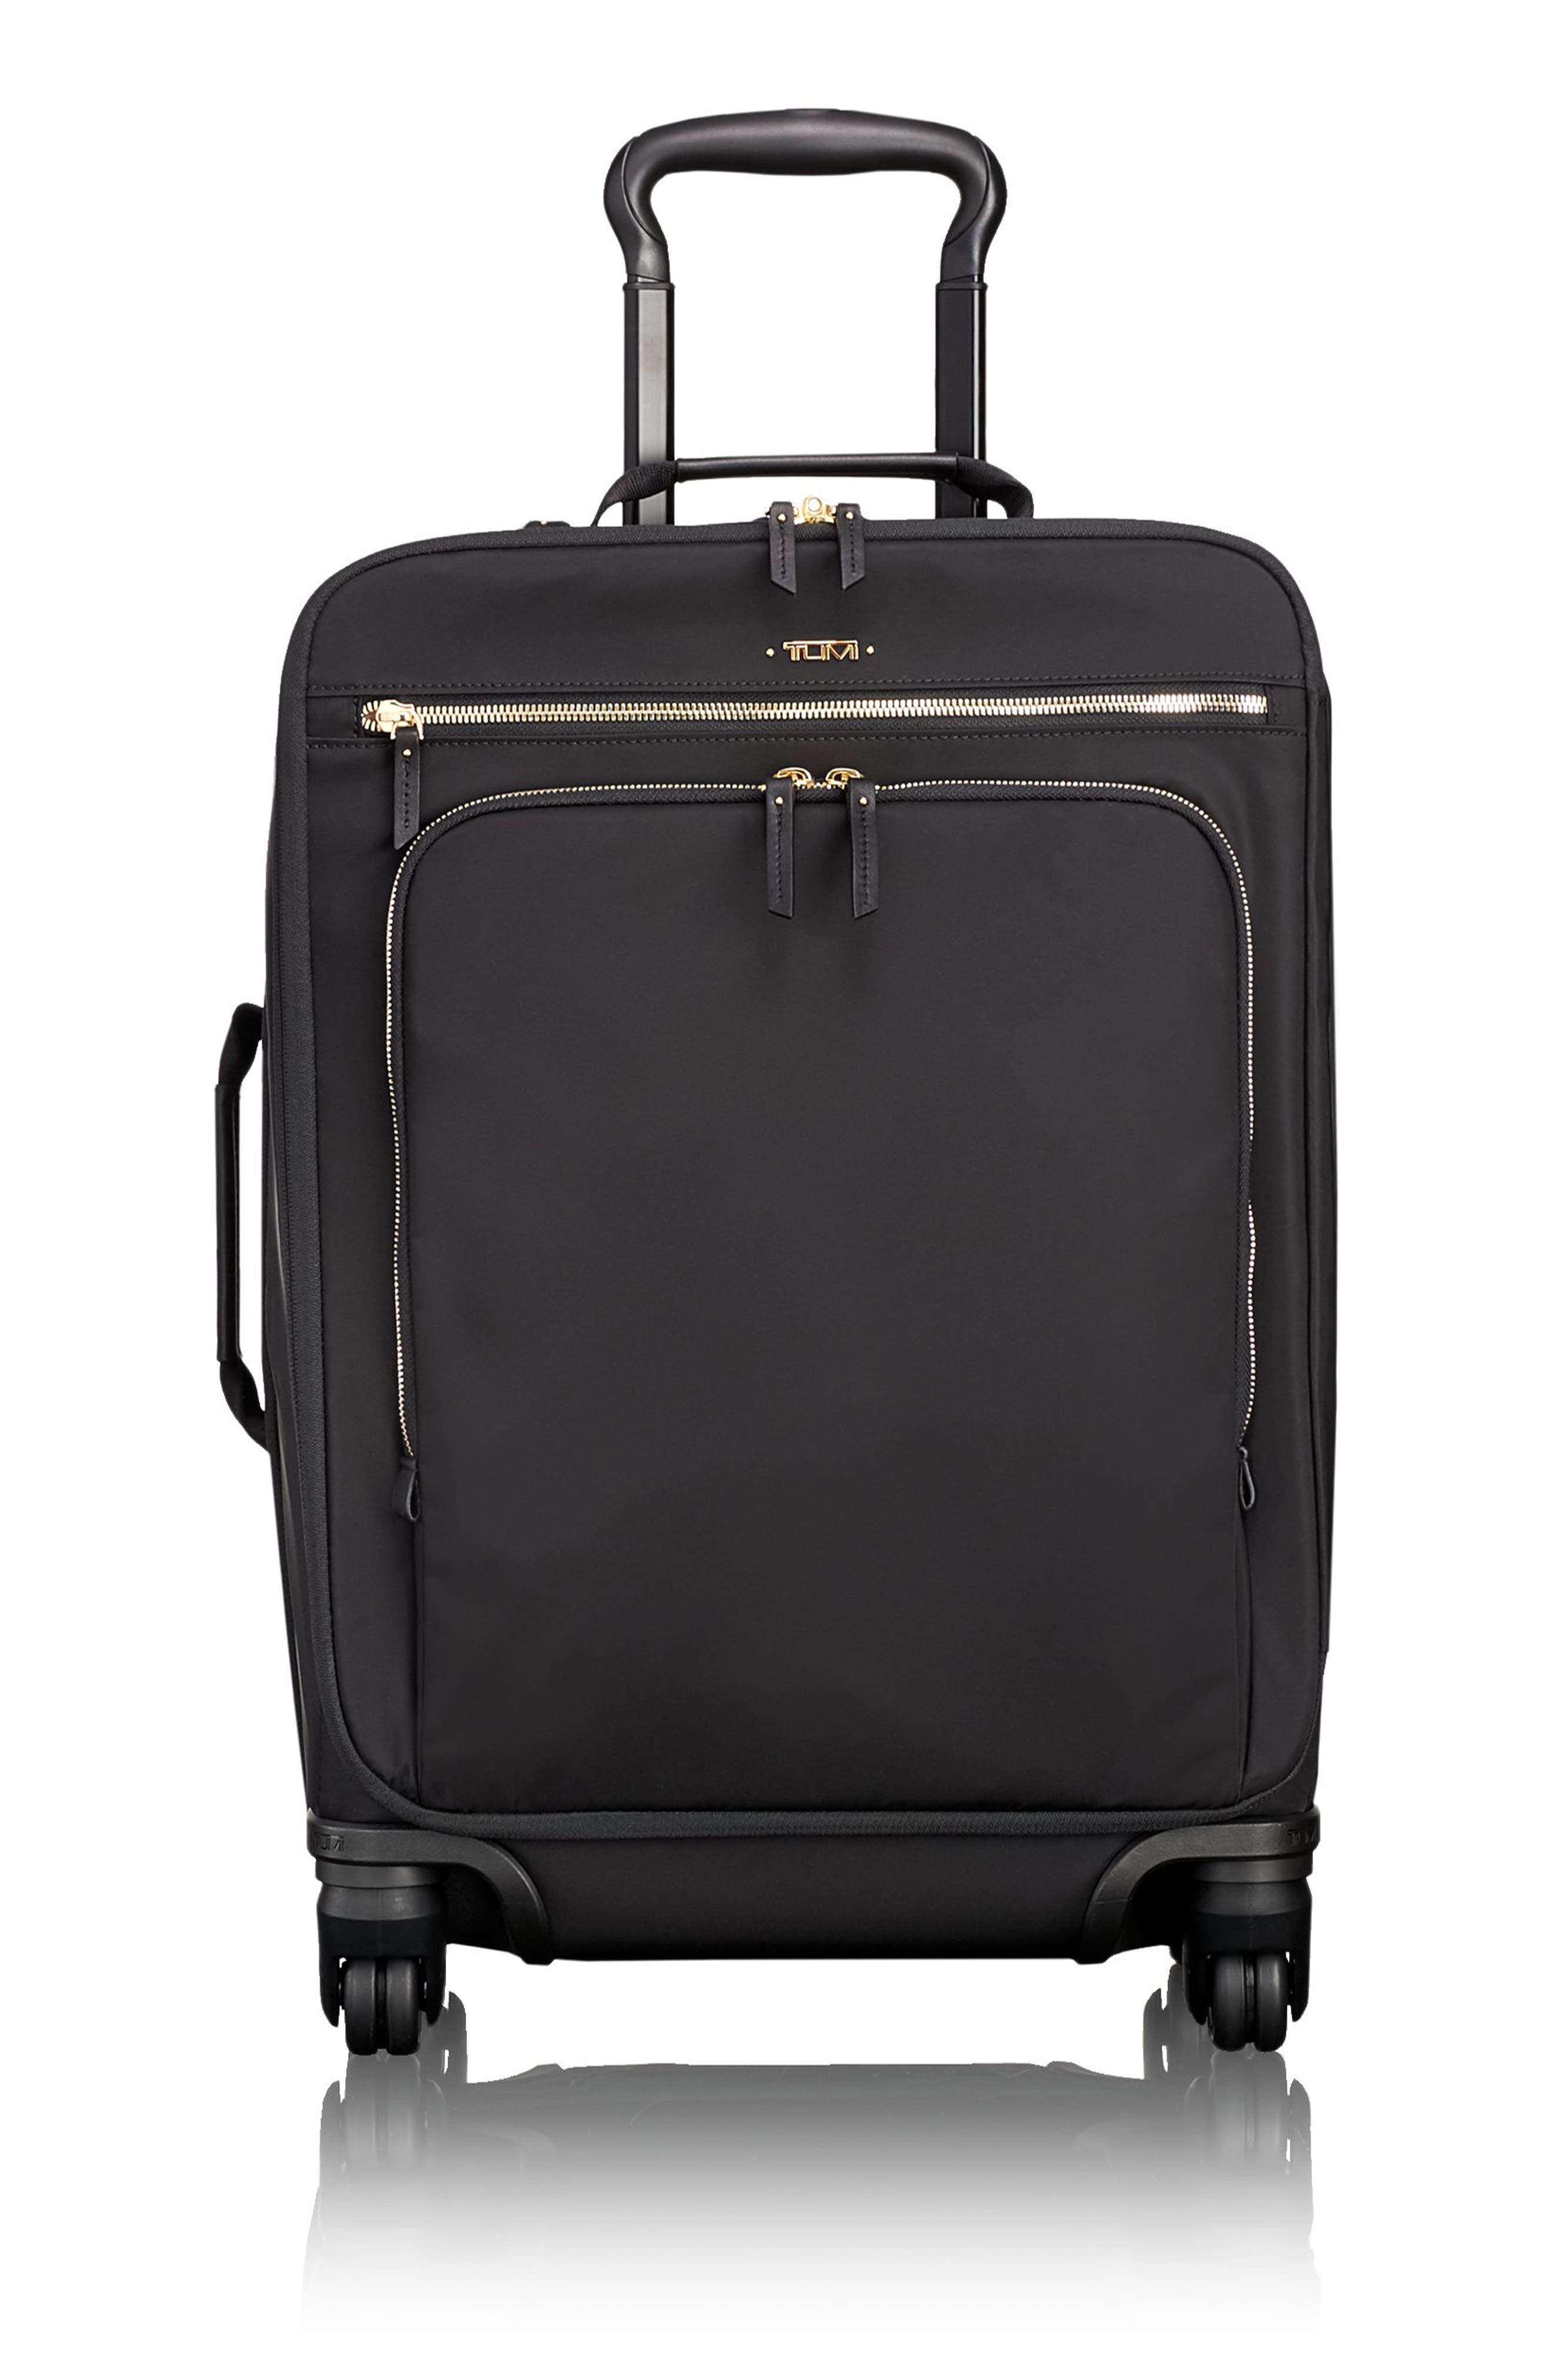 Alternate Image 1 Selected - Tumi Super Leger 21 Inch Nylon Carry-On